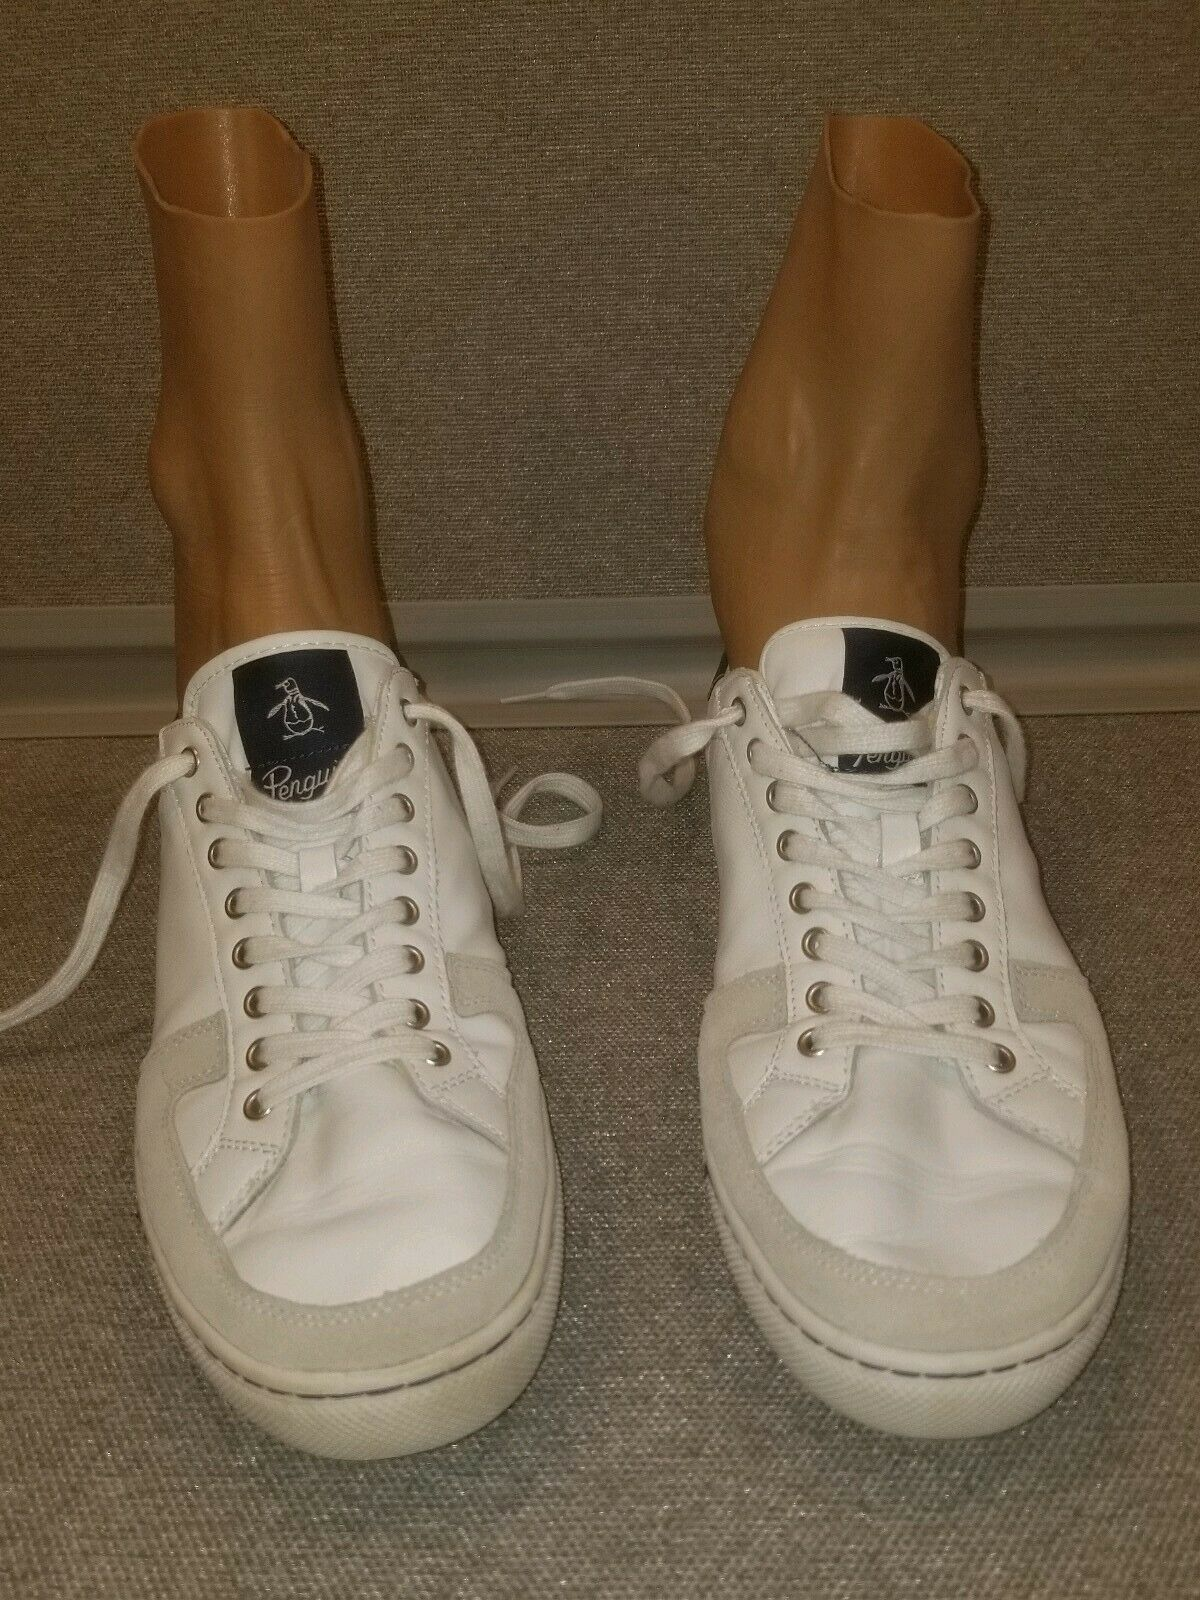 Mens Original Penguin White Rave Leather Sneakers by Munsing Wear US Size 12